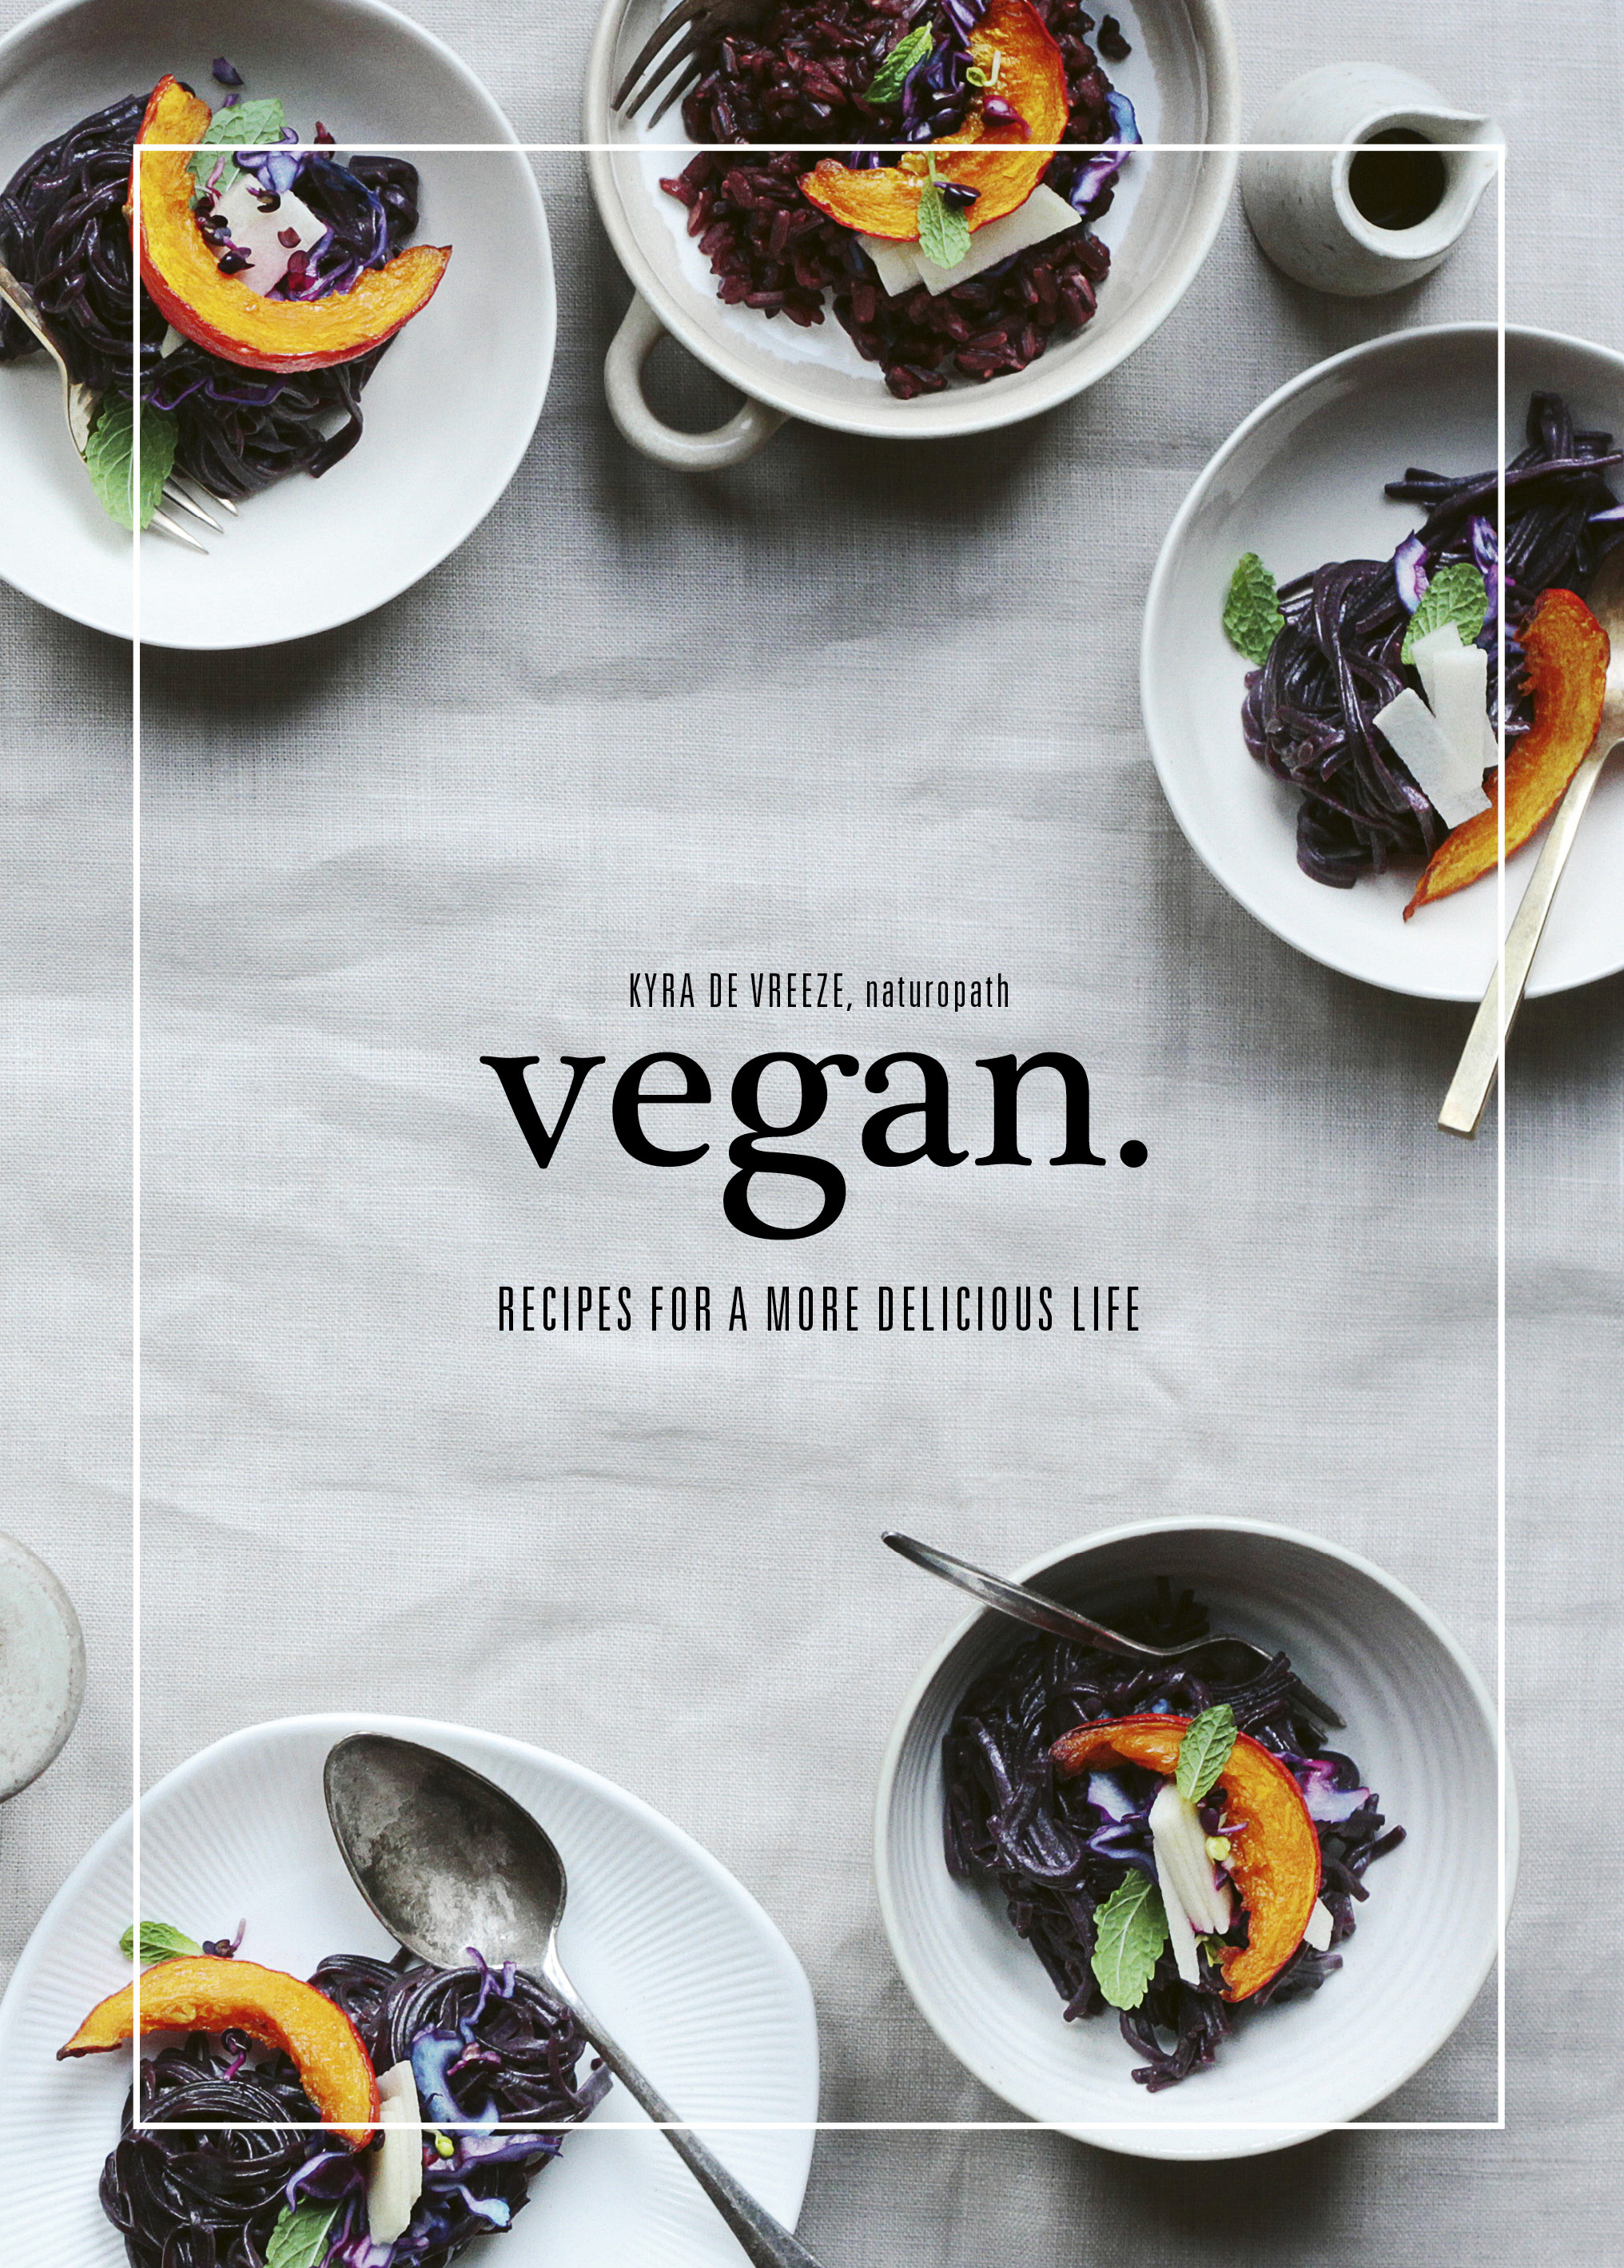 - Check our more delicious recipes in Kyra's new book Vegan, $24.99, Murdoch Books.